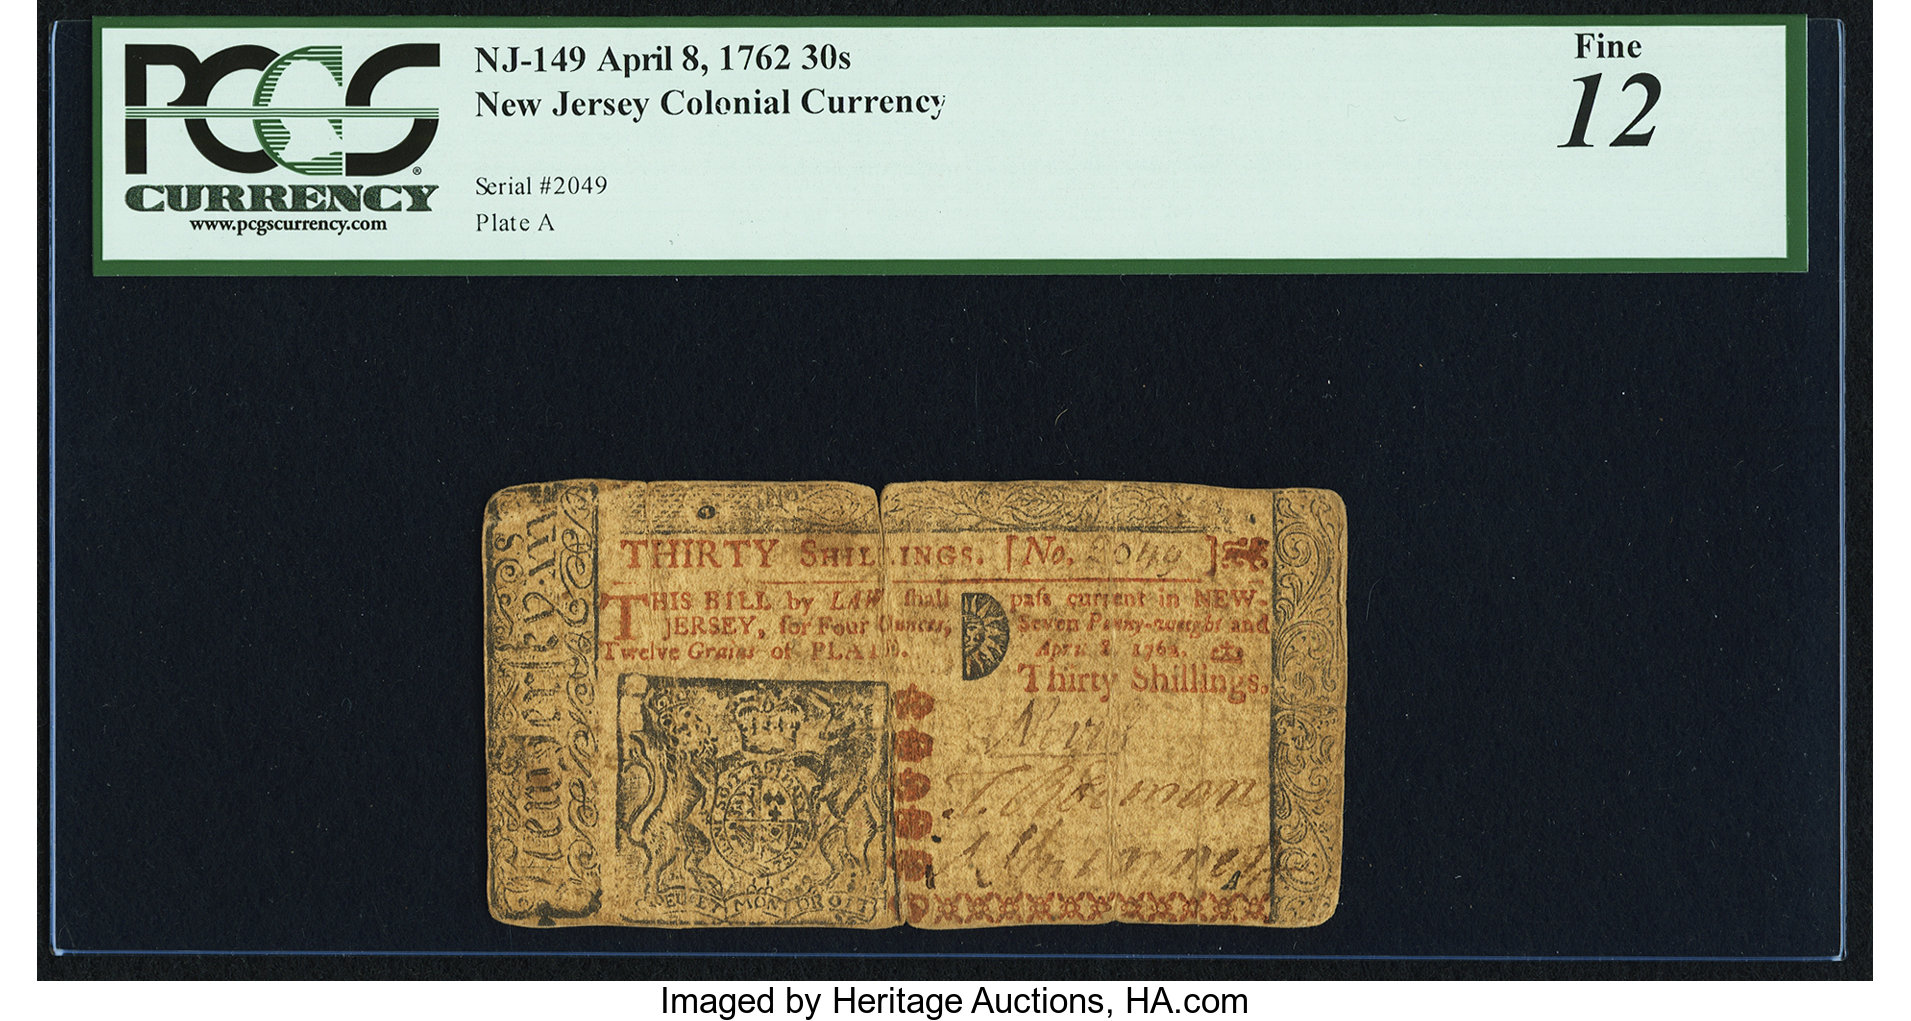 sample image for 1762